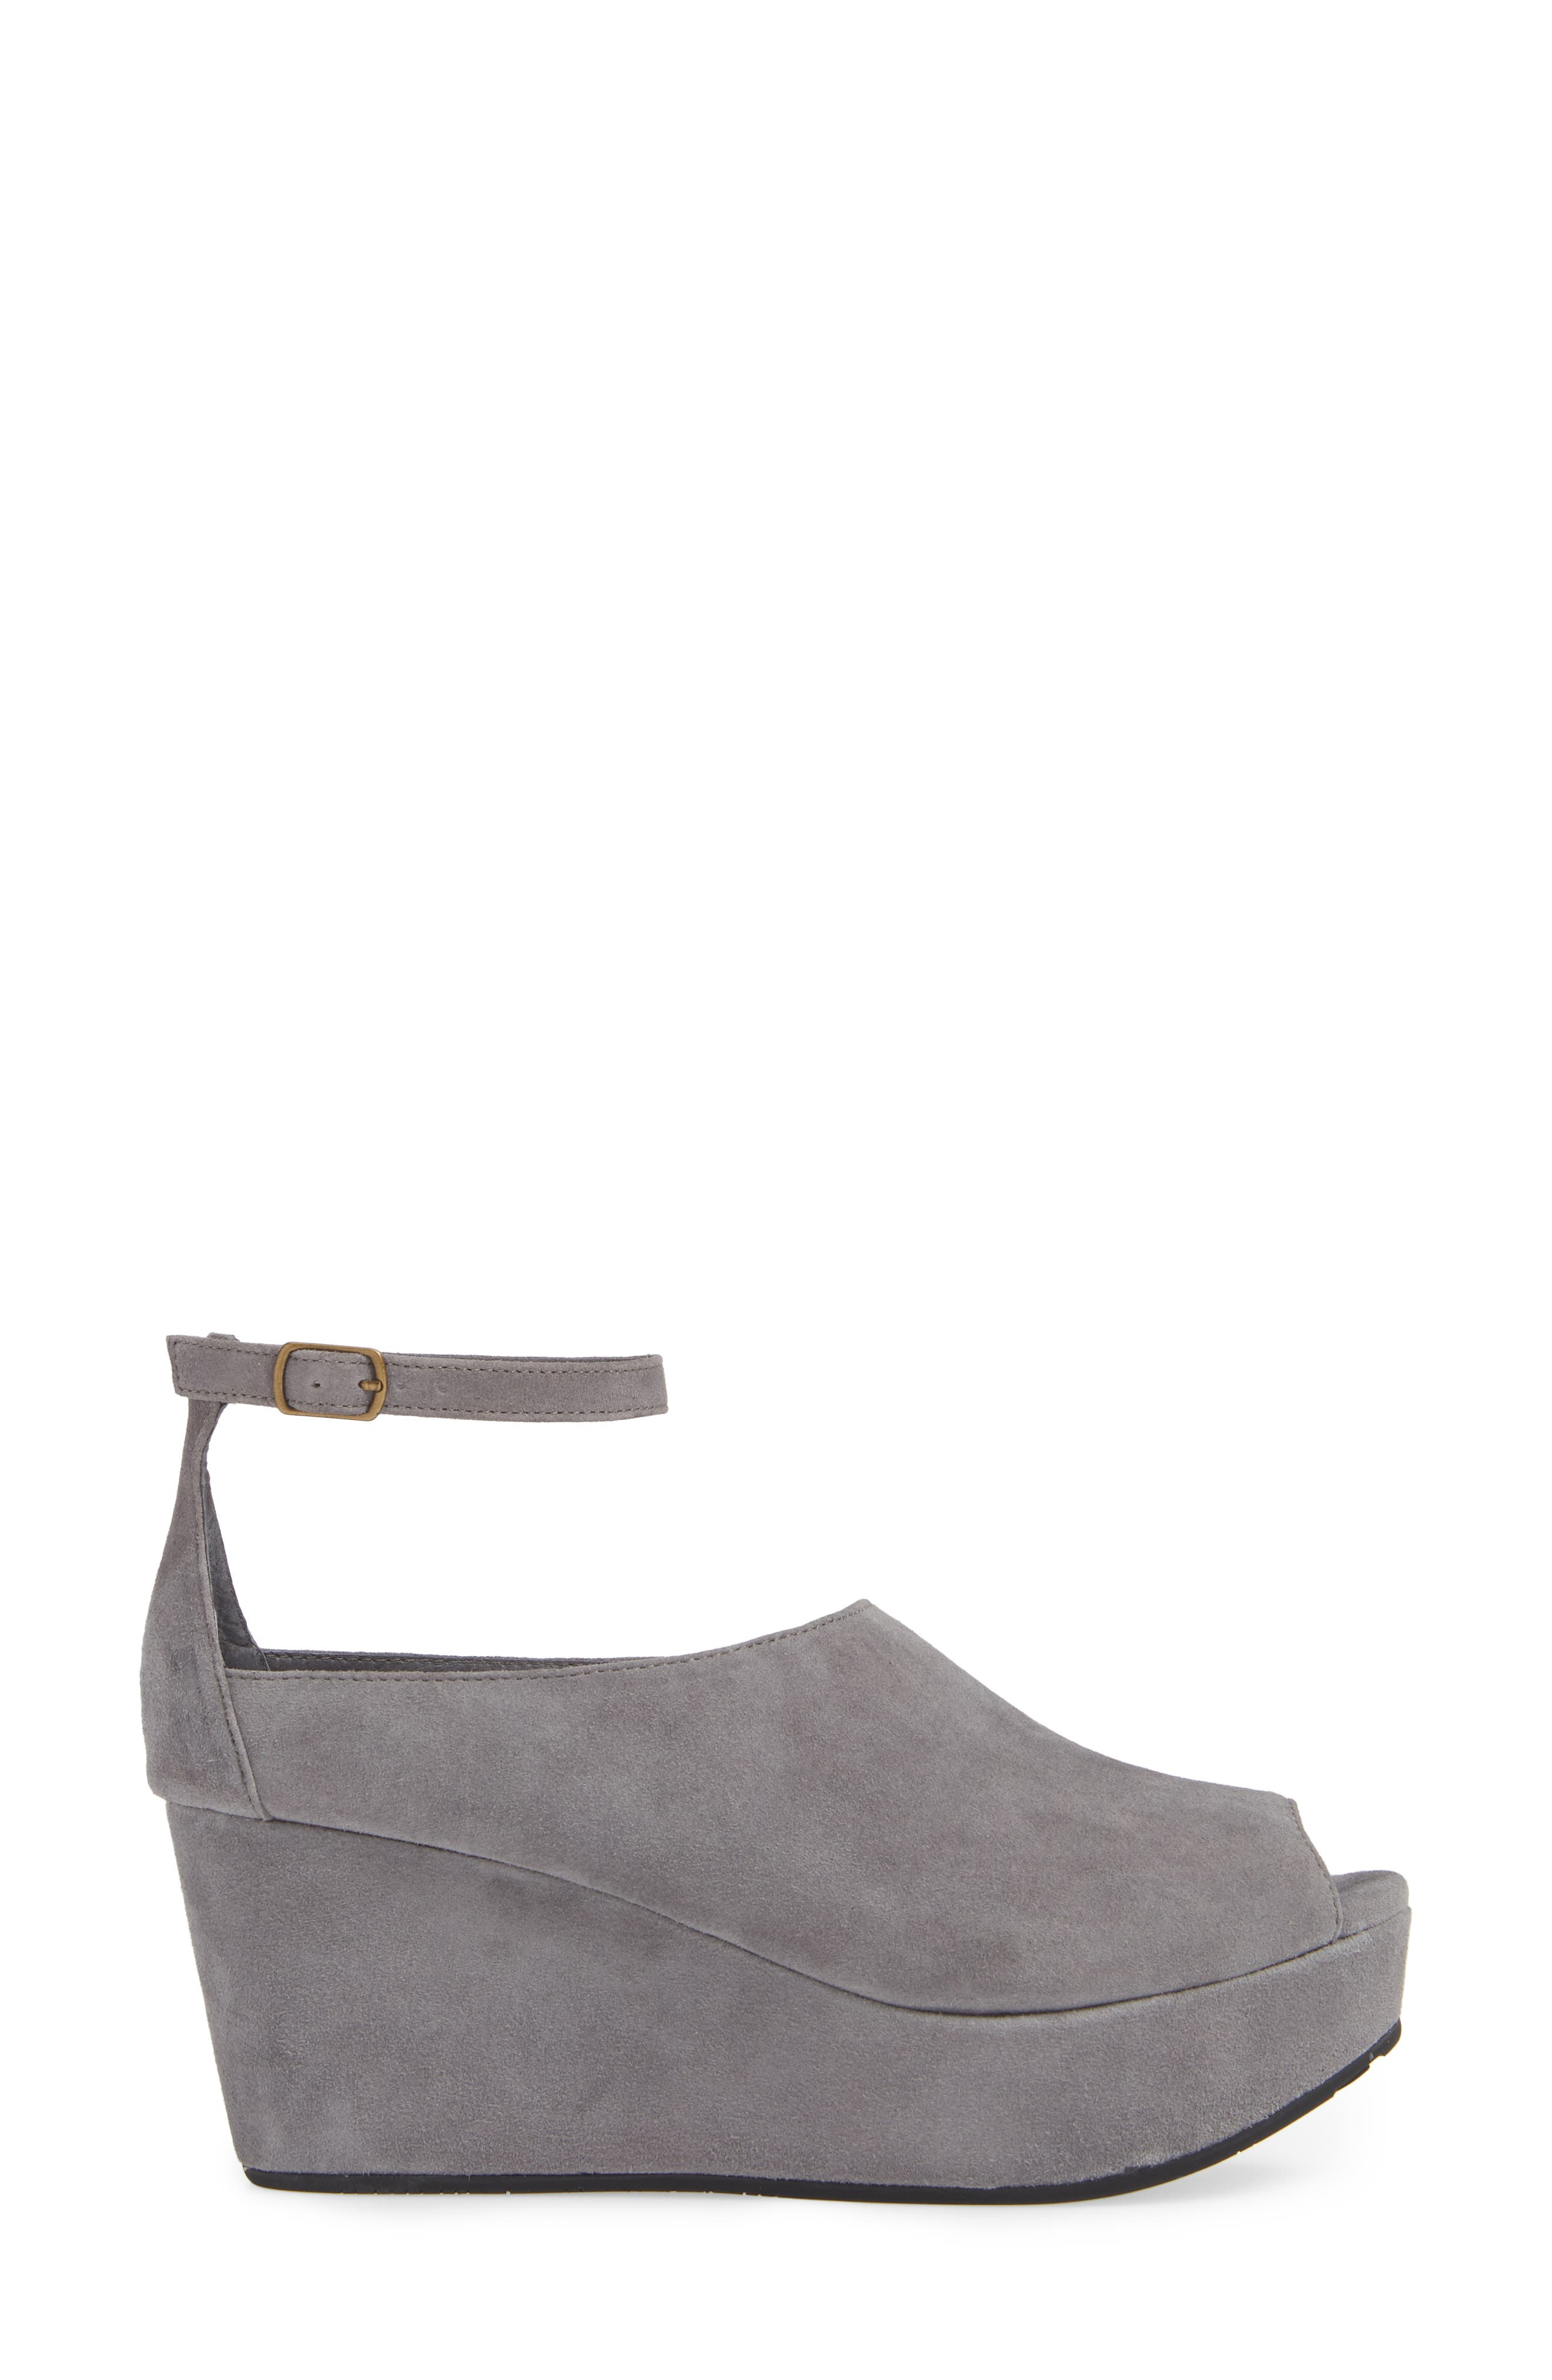 Walter Ankle Strap Wedge Sandal,                             Alternate thumbnail 3, color,                             GREY SUEDE